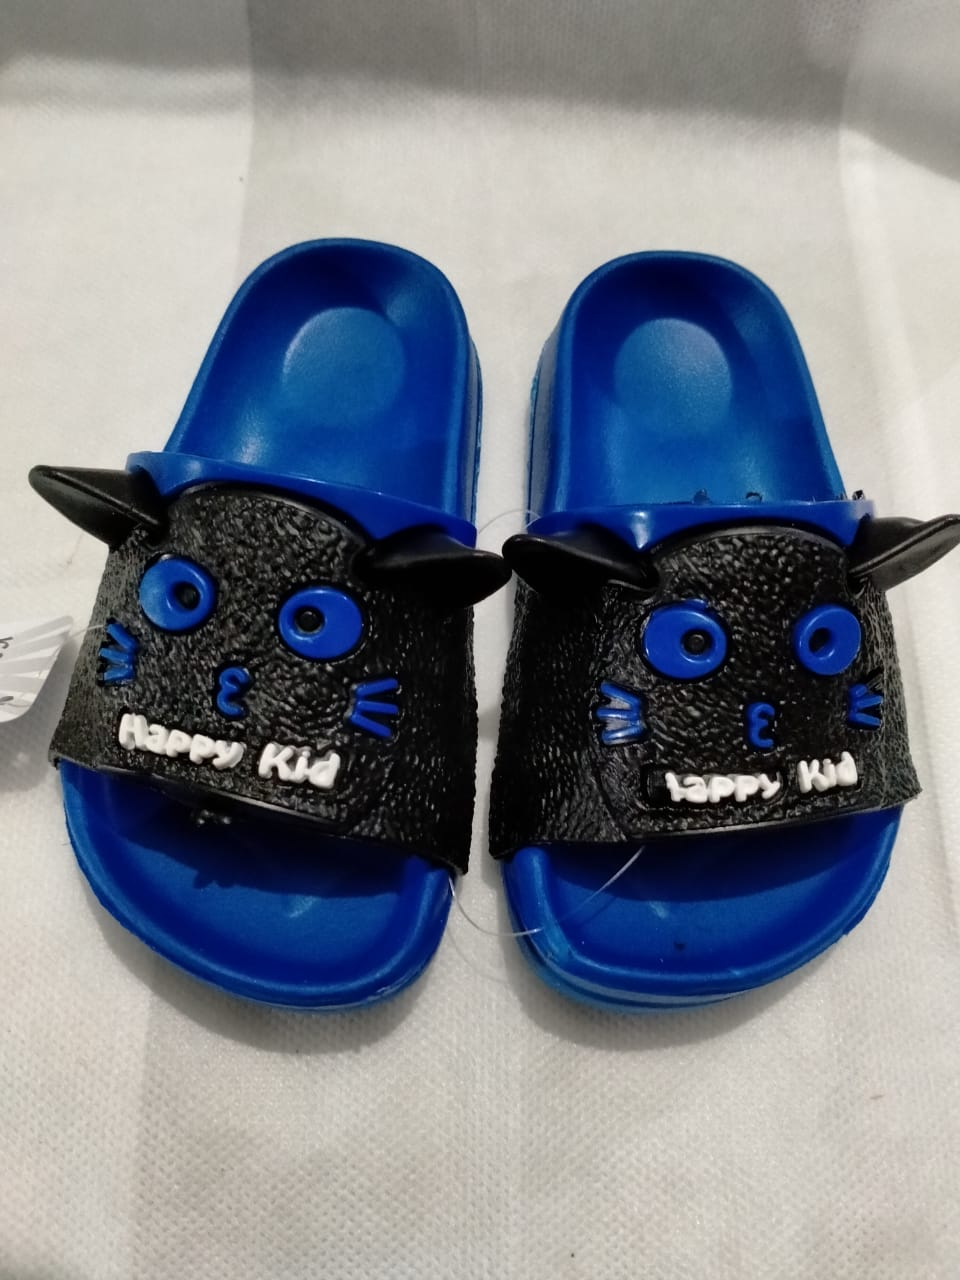 Softy Slippers shoes for kids